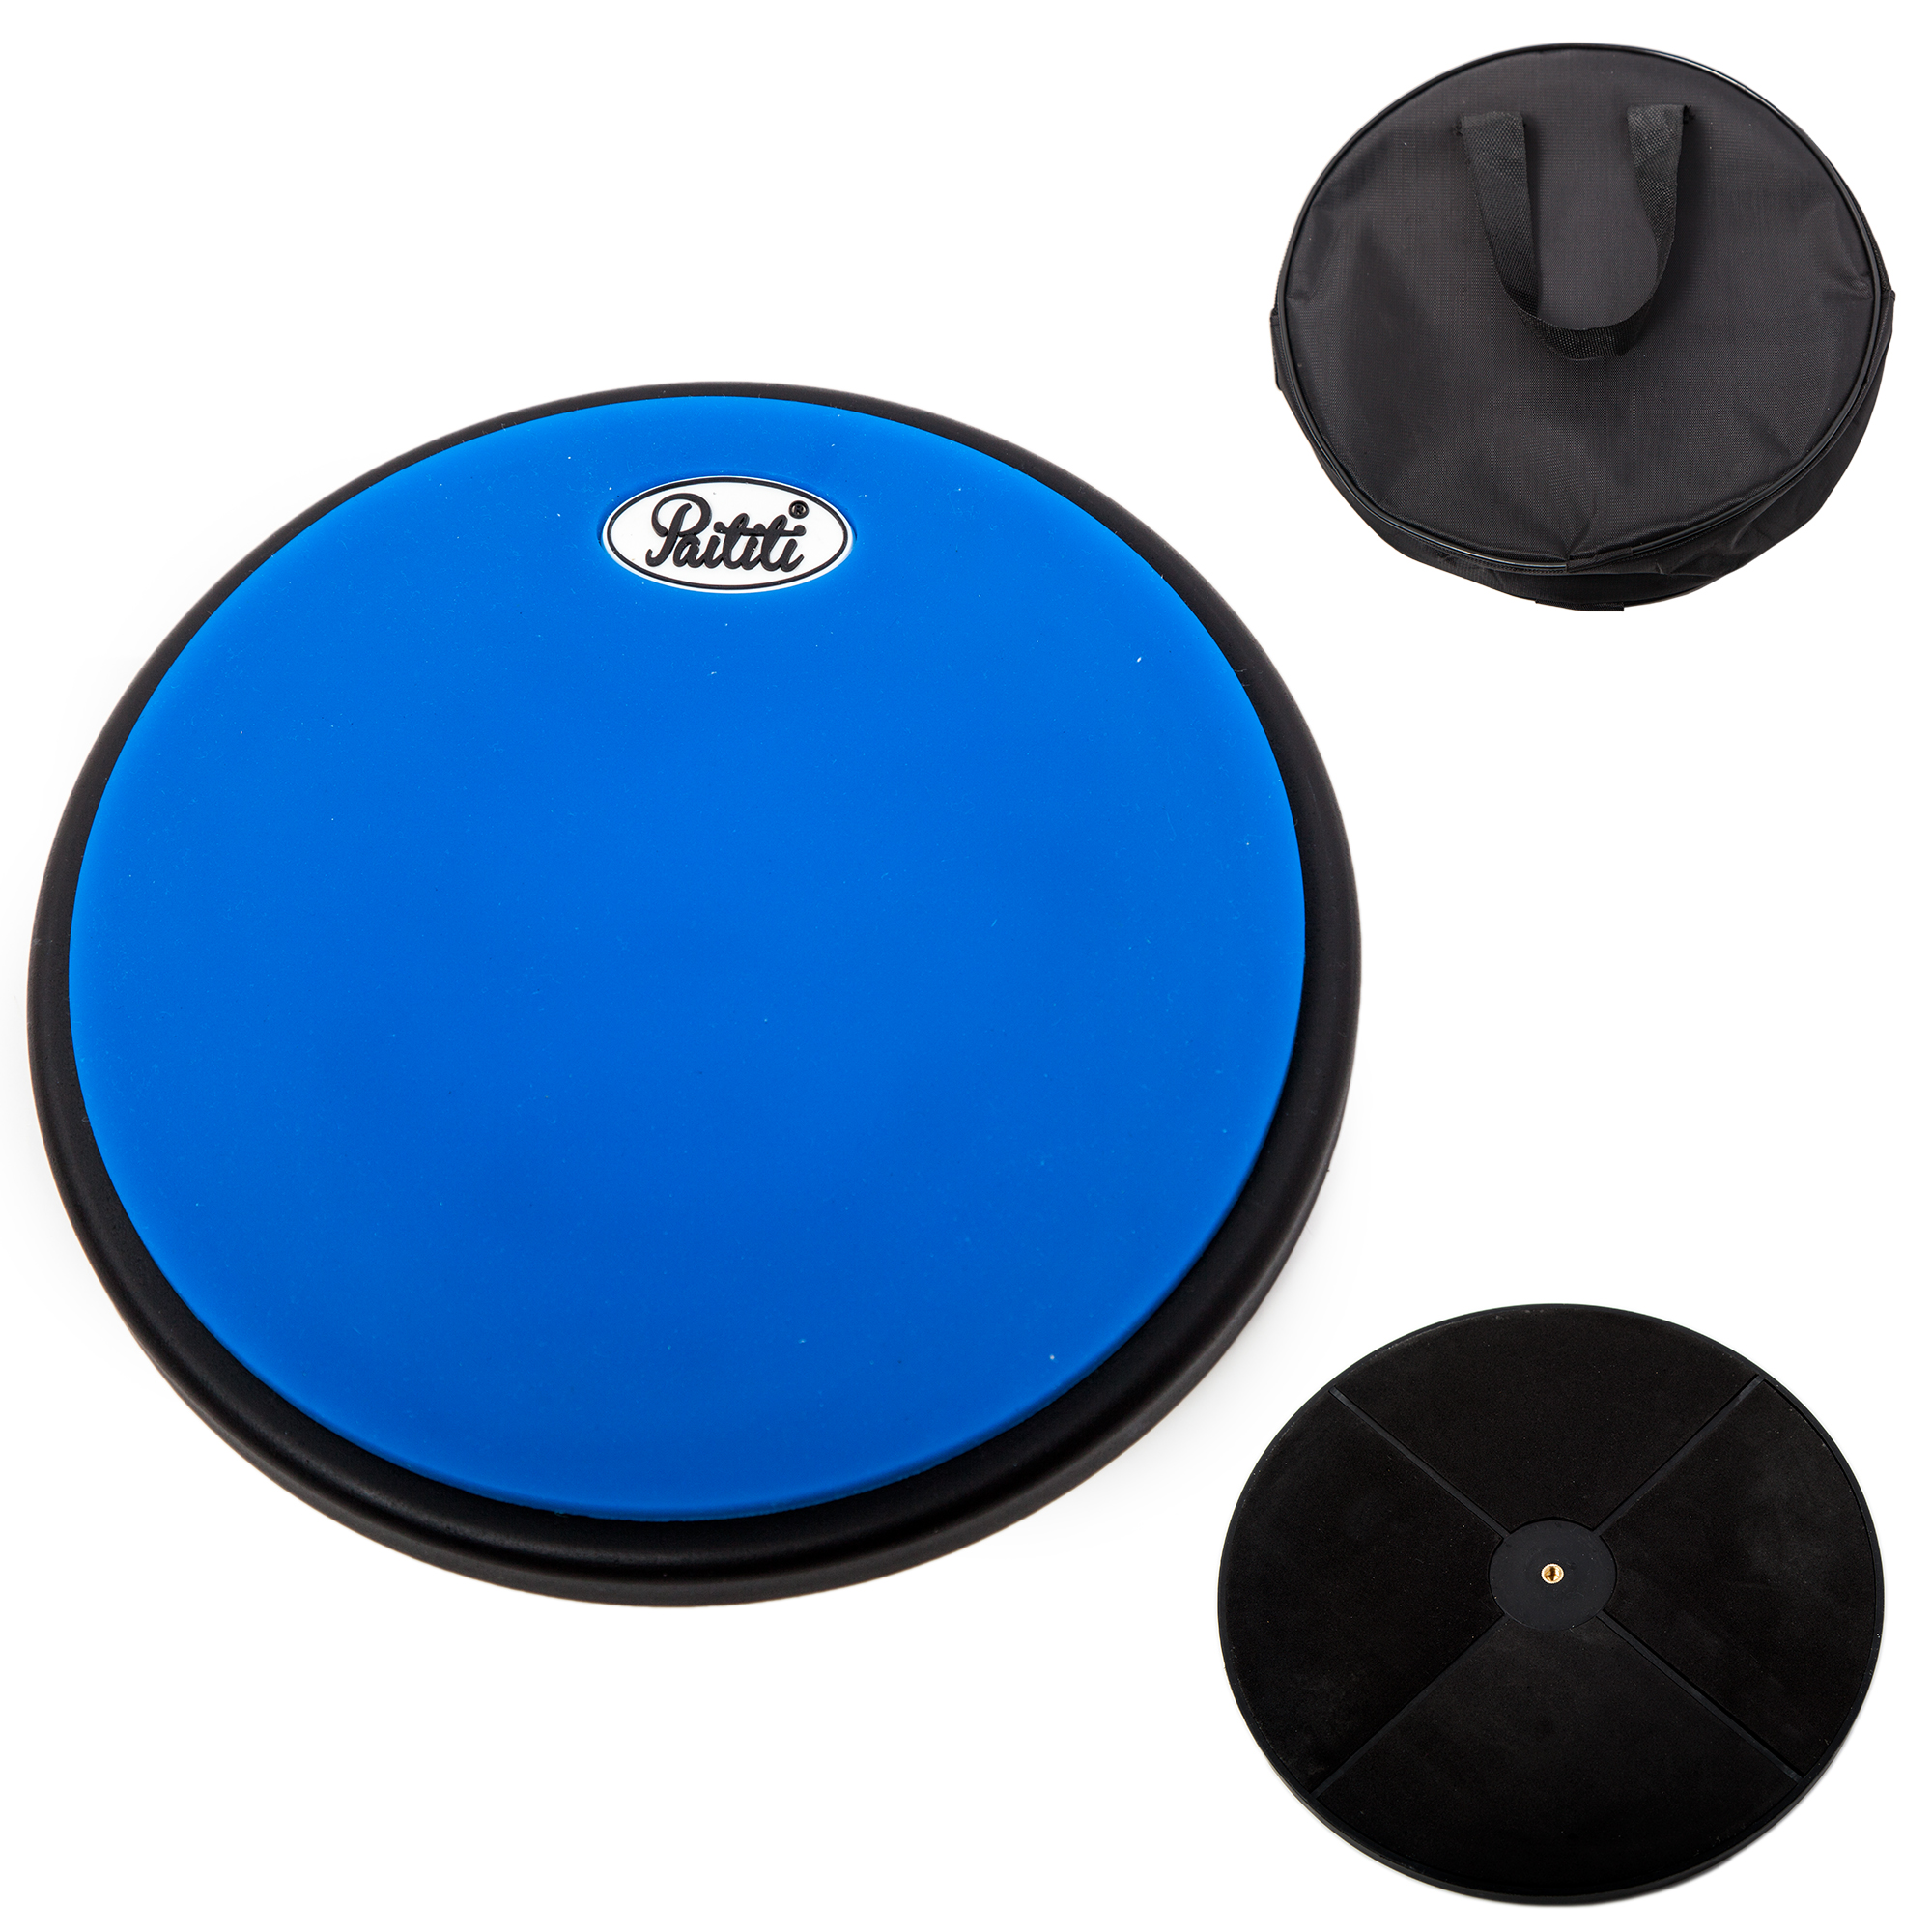 PAITITI 8 Inch Silent Portable Practice Drum Pad Round Shape with Carrying Bag Blue Color  - Bonus 7A Drumsticks